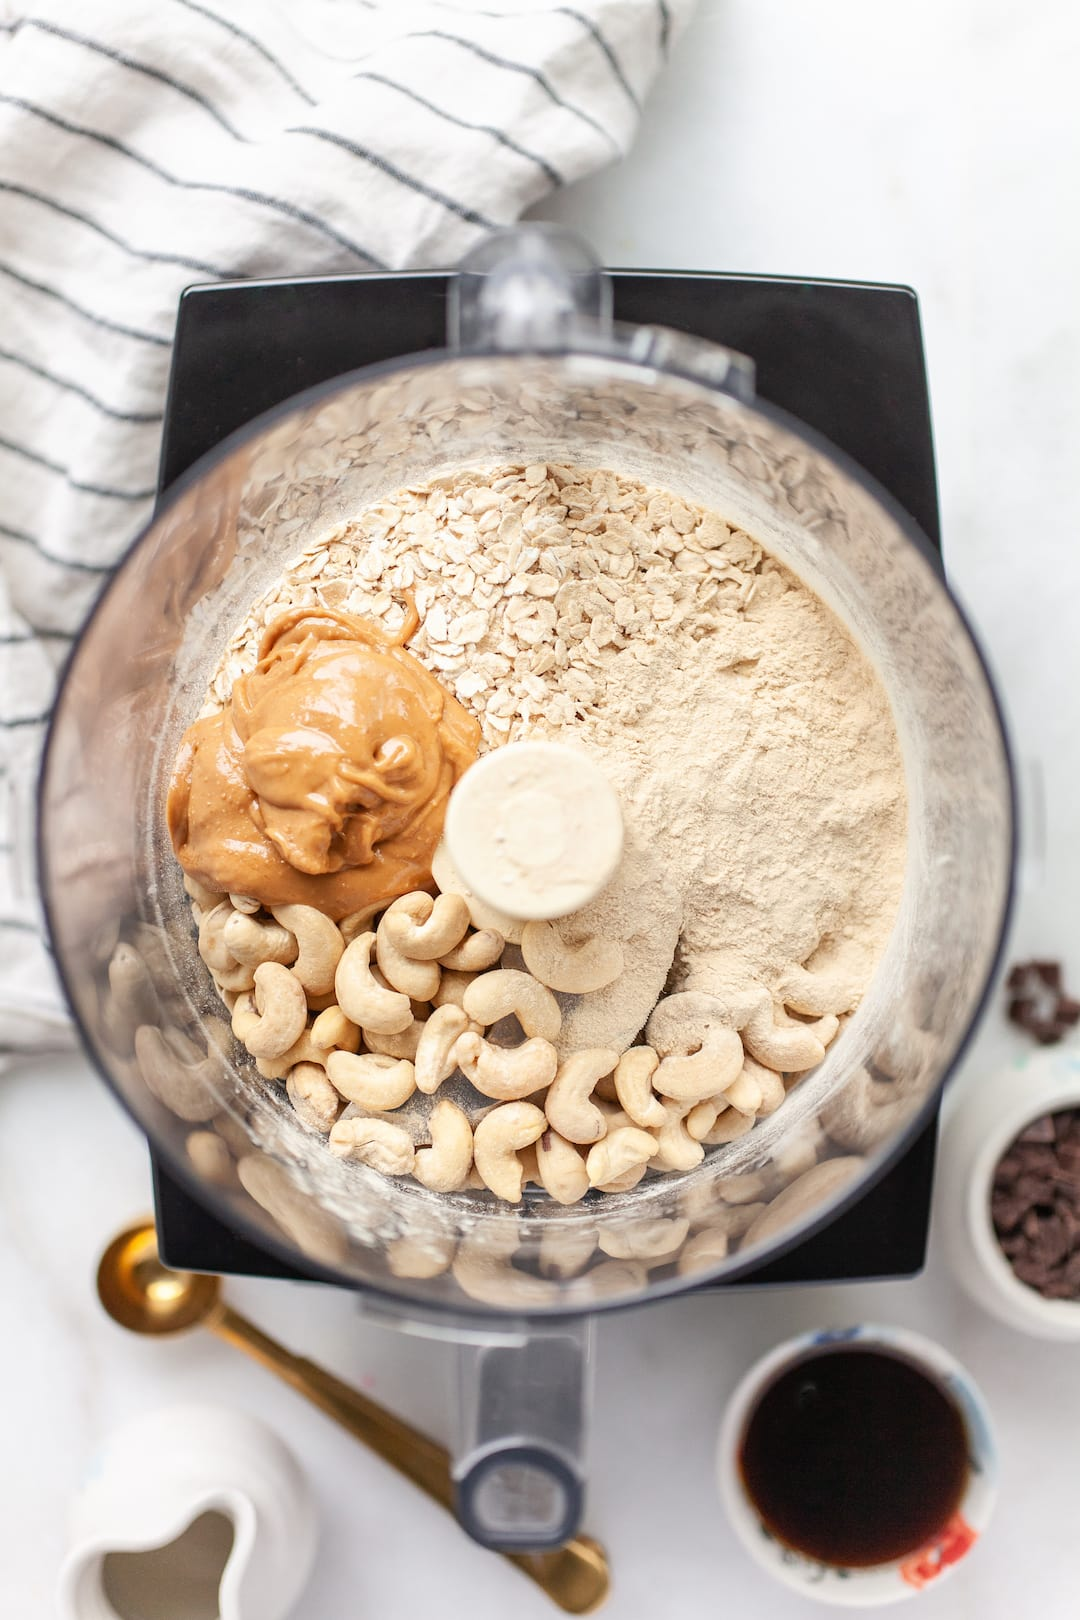 ingredients for protein cookie dough in a food processor - cashews, peanut butter, rolled oats, protein powder